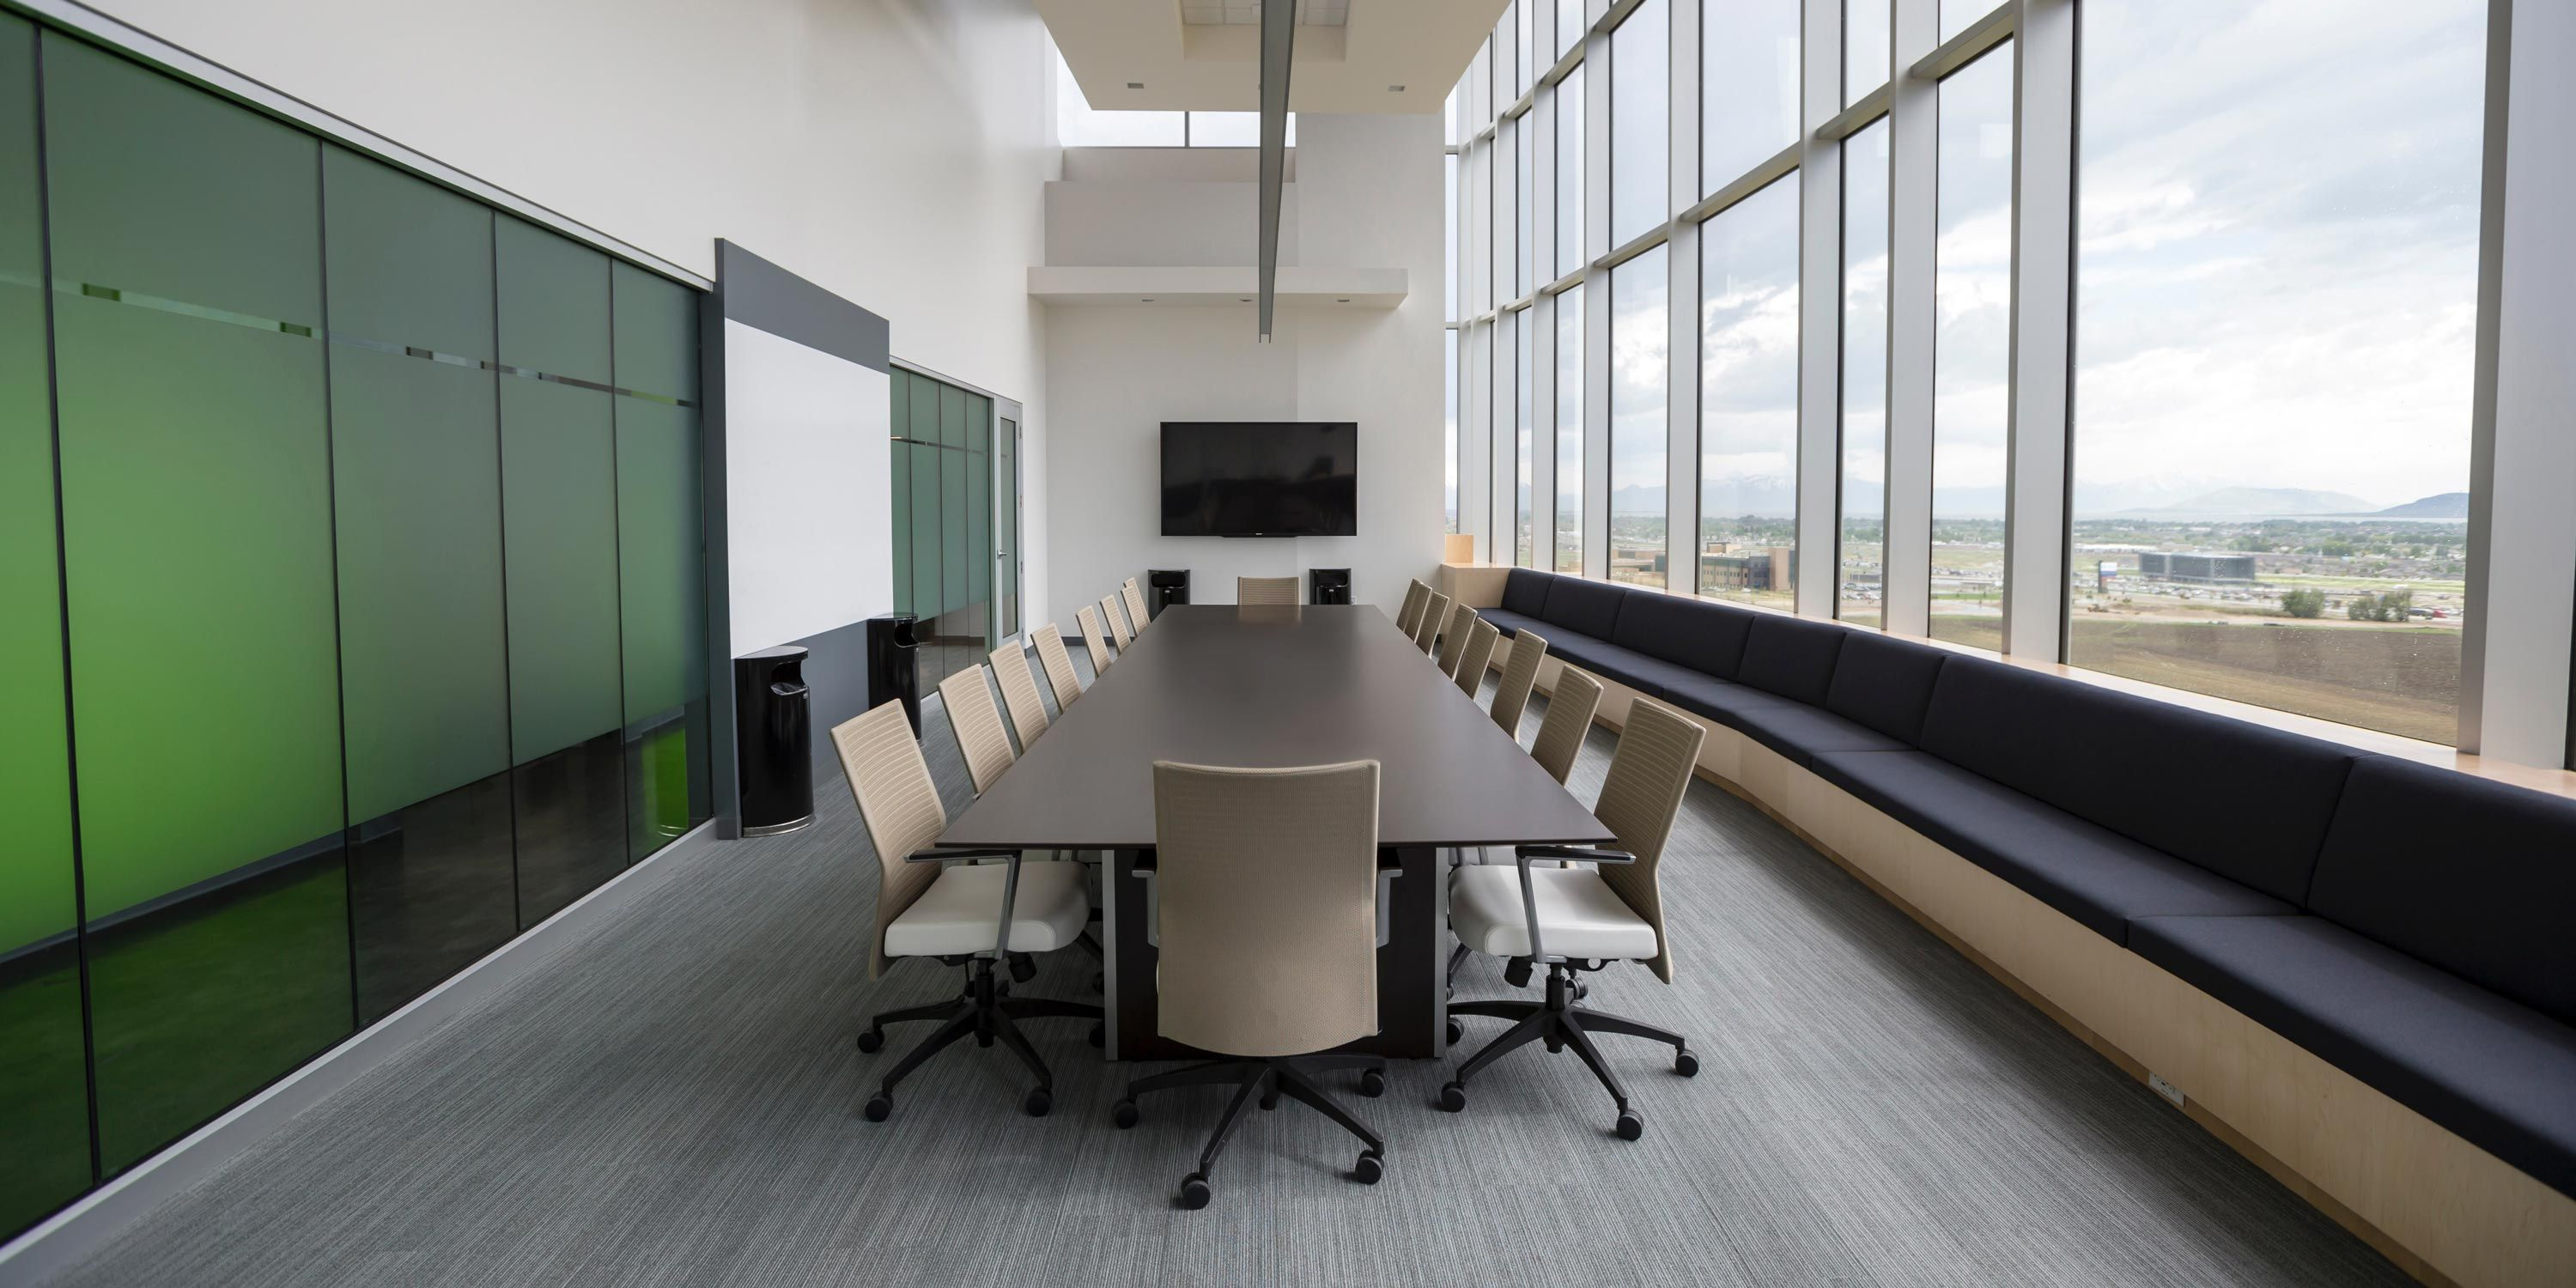 Outdoor Audio Memphis TN, arkansas integration company, smart home automation, crestron dealer, commercial automation, conference room, board room